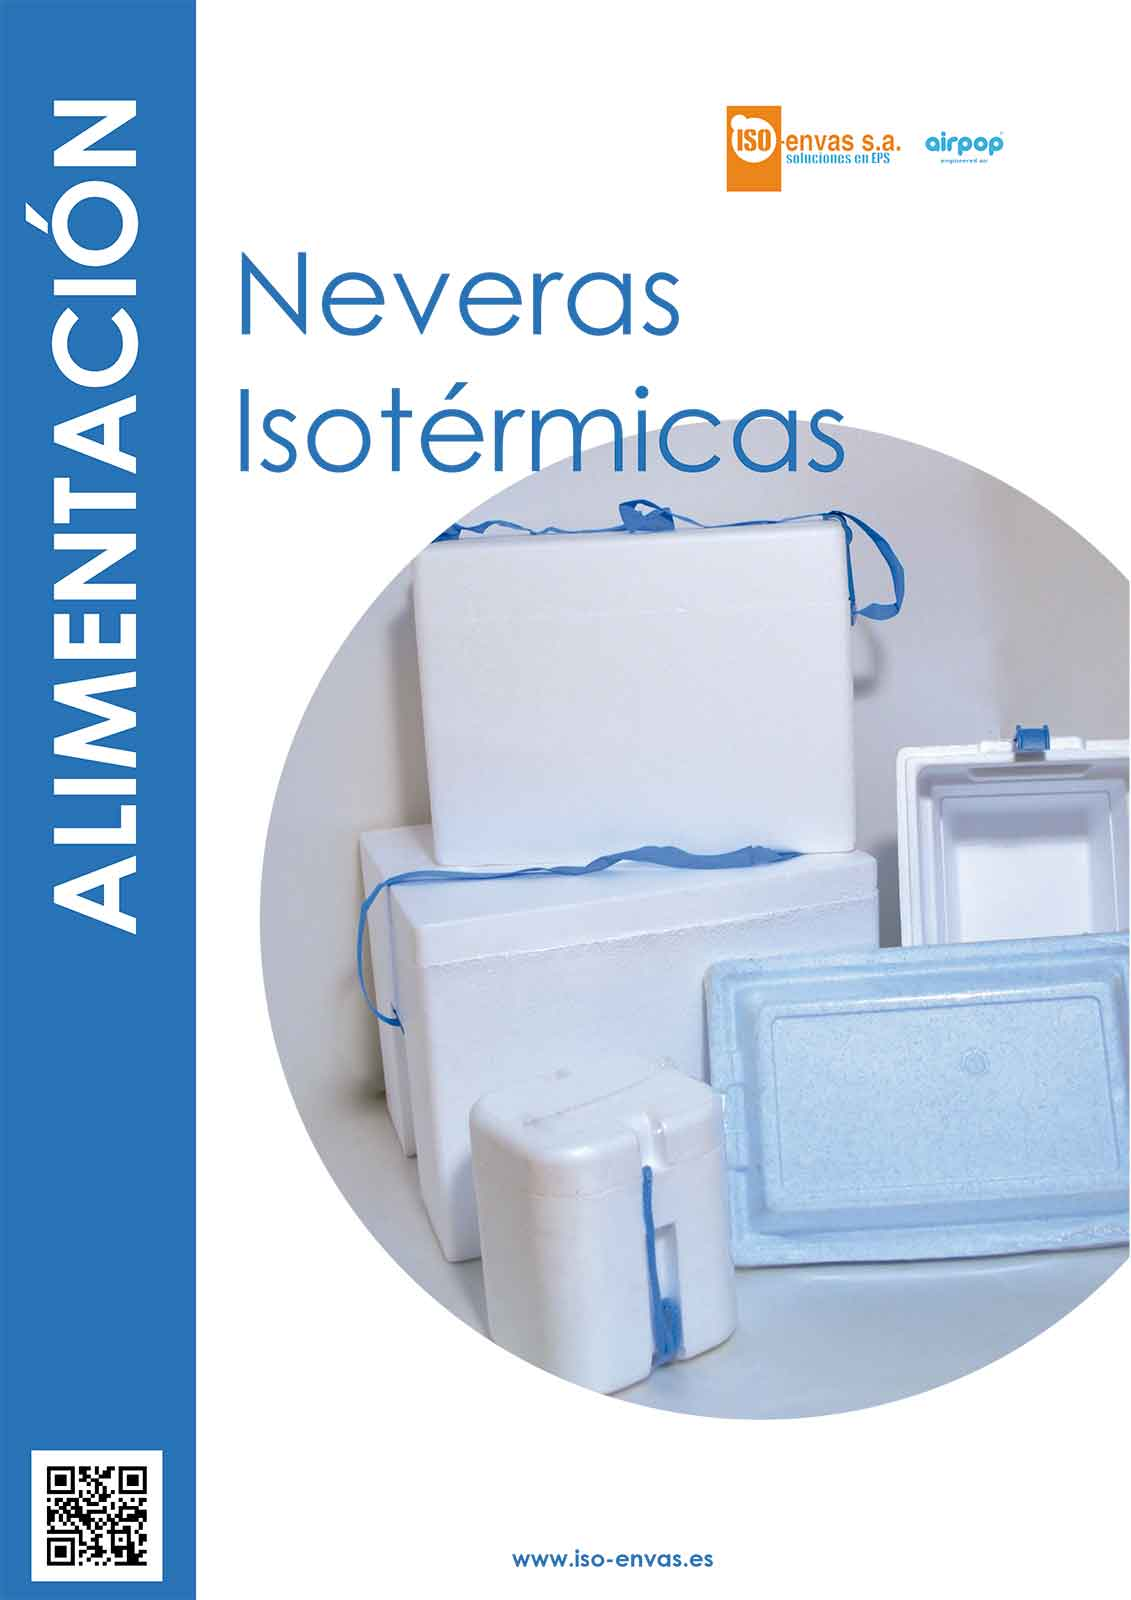 03_NEVERAS_ISOTERMICAS-1